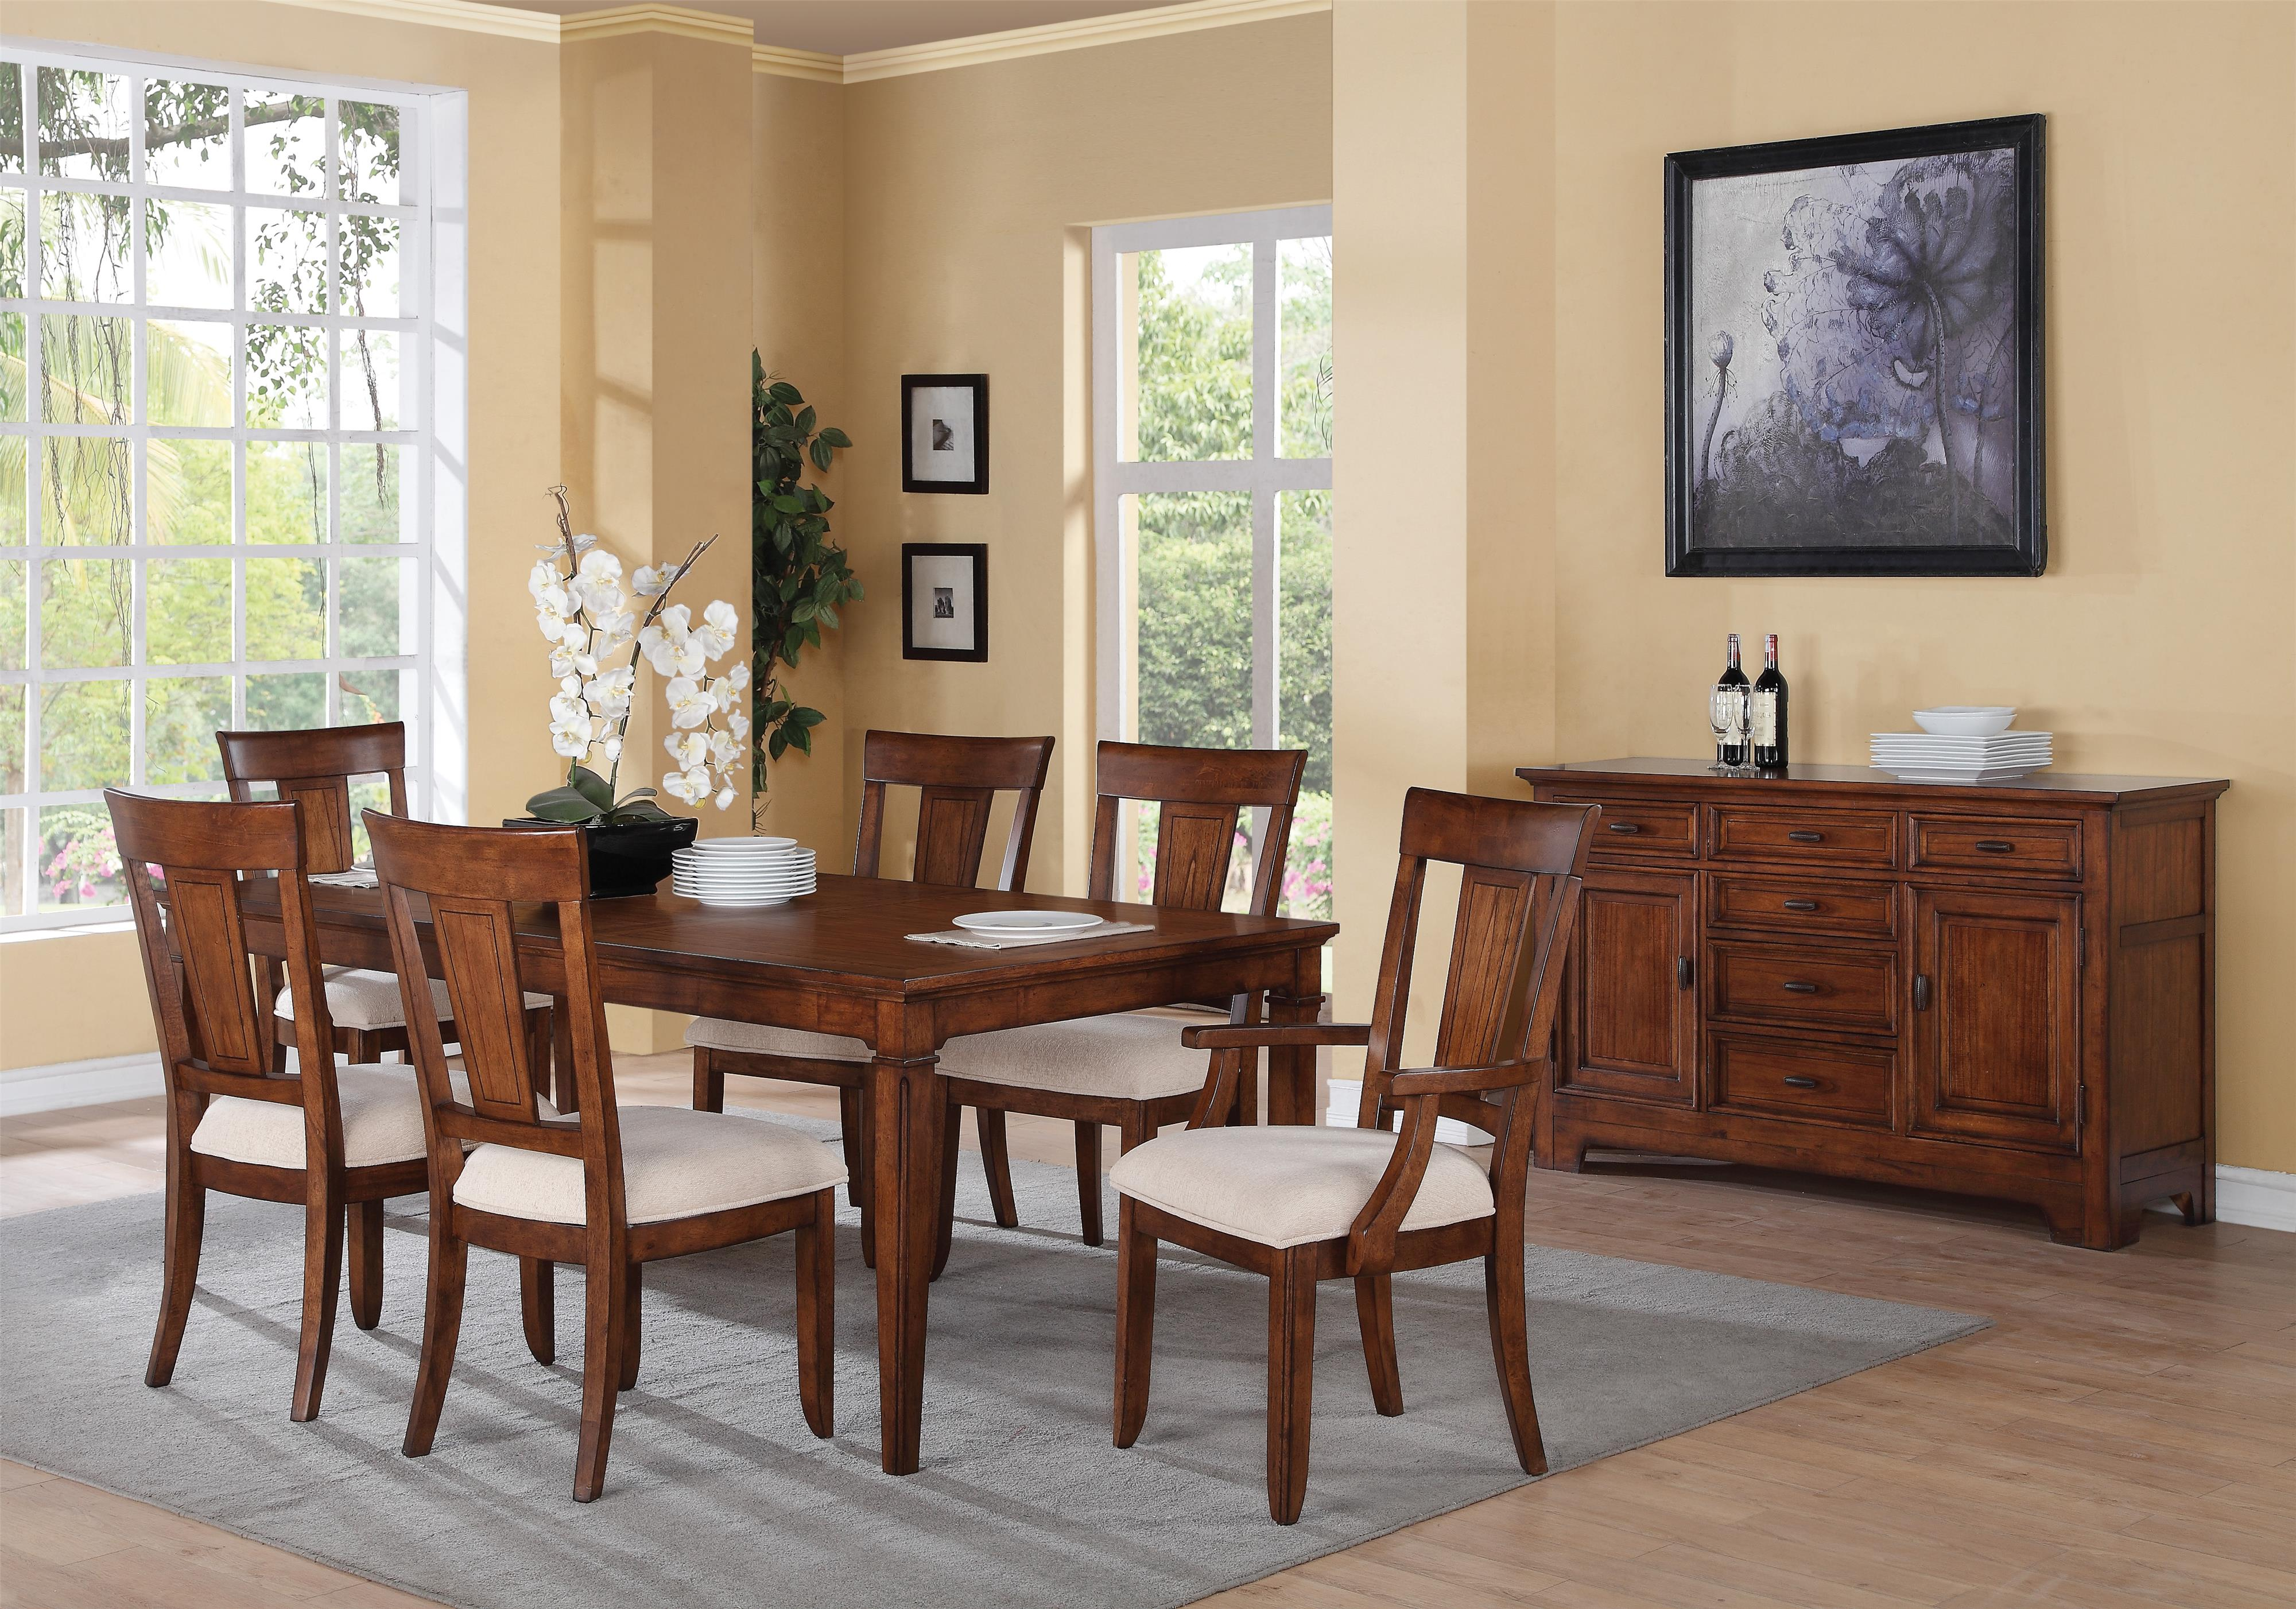 Flexsteel Wynwood Collection River Valley Formal Dining Room Group - Item Number: W1572 Dining Room Group 2